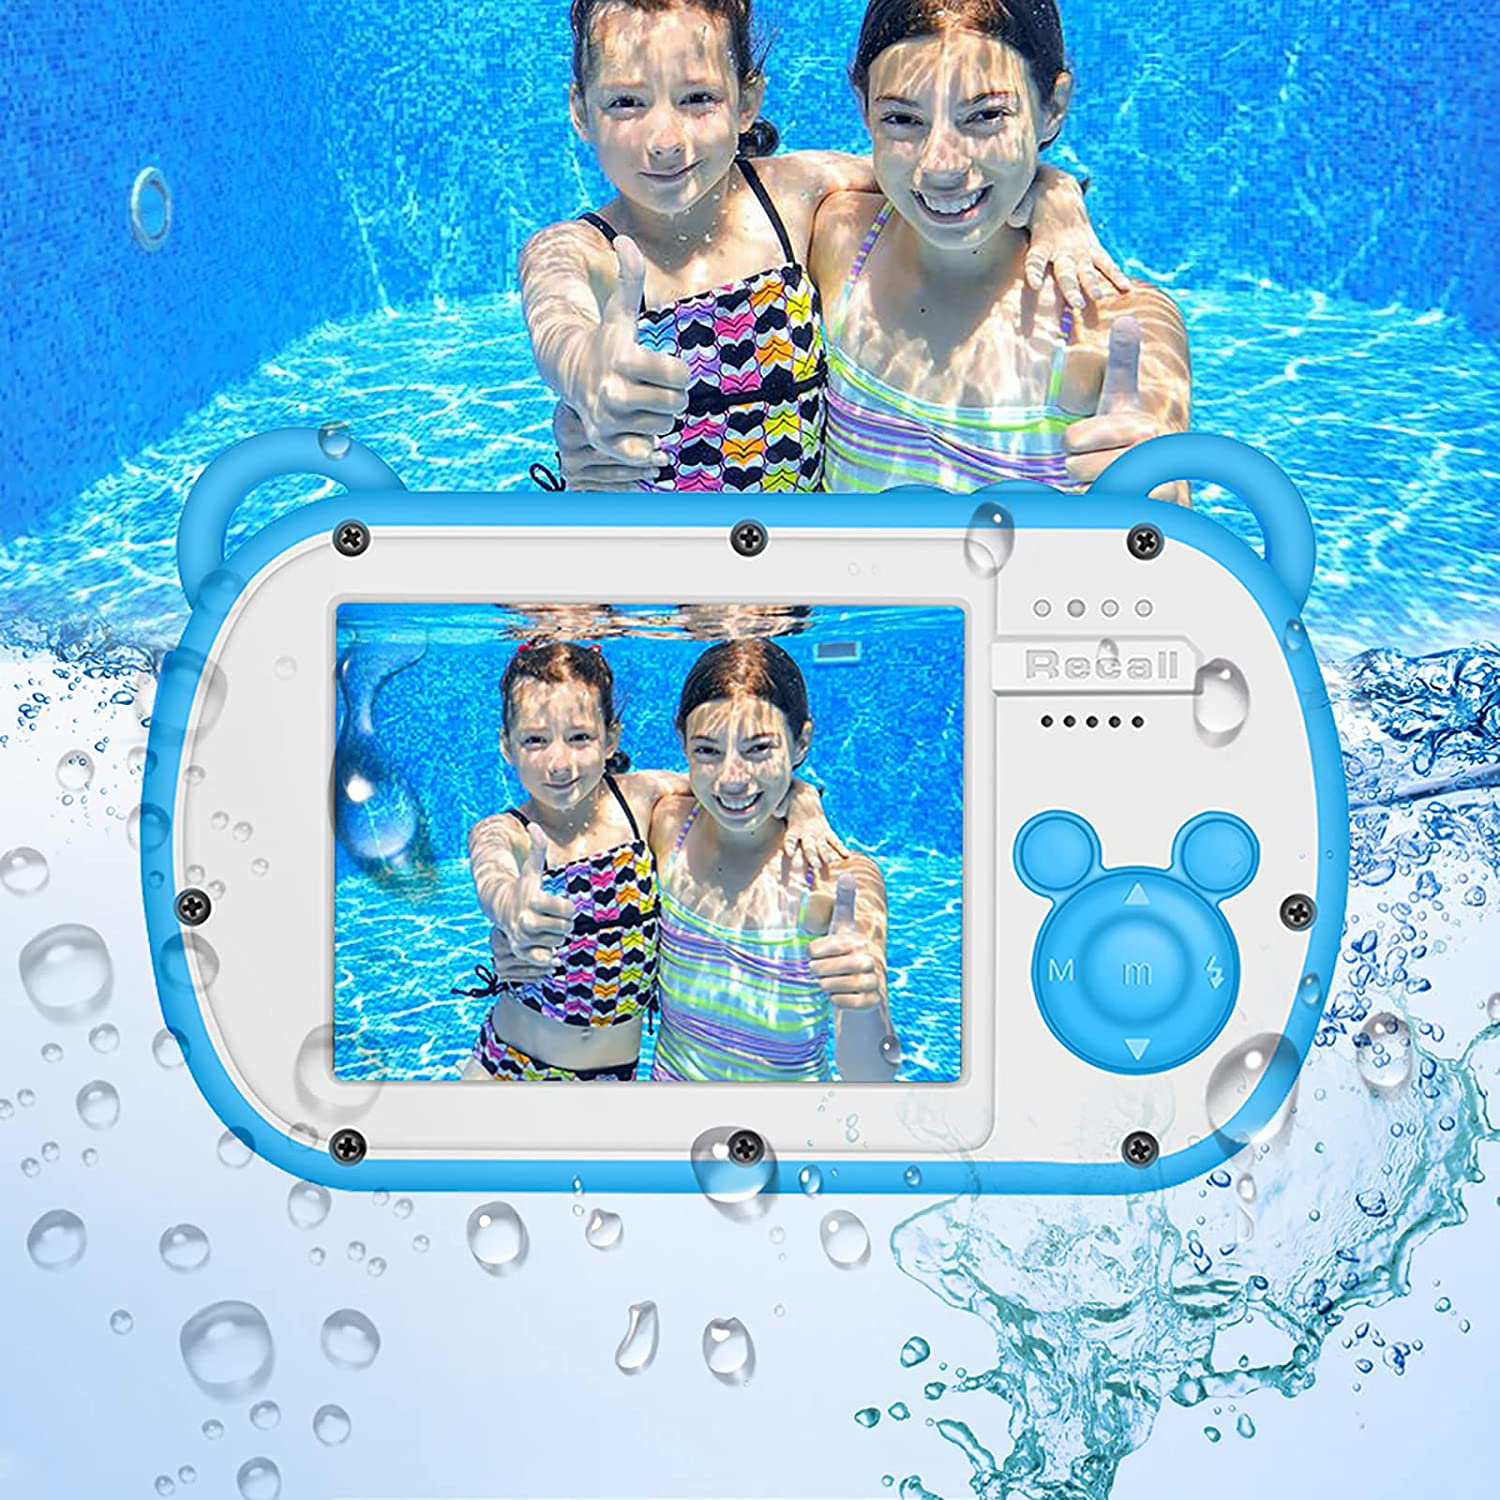 Underwater Camera for safety Kids 1080P Waterproof HD Video A surprise price is realized